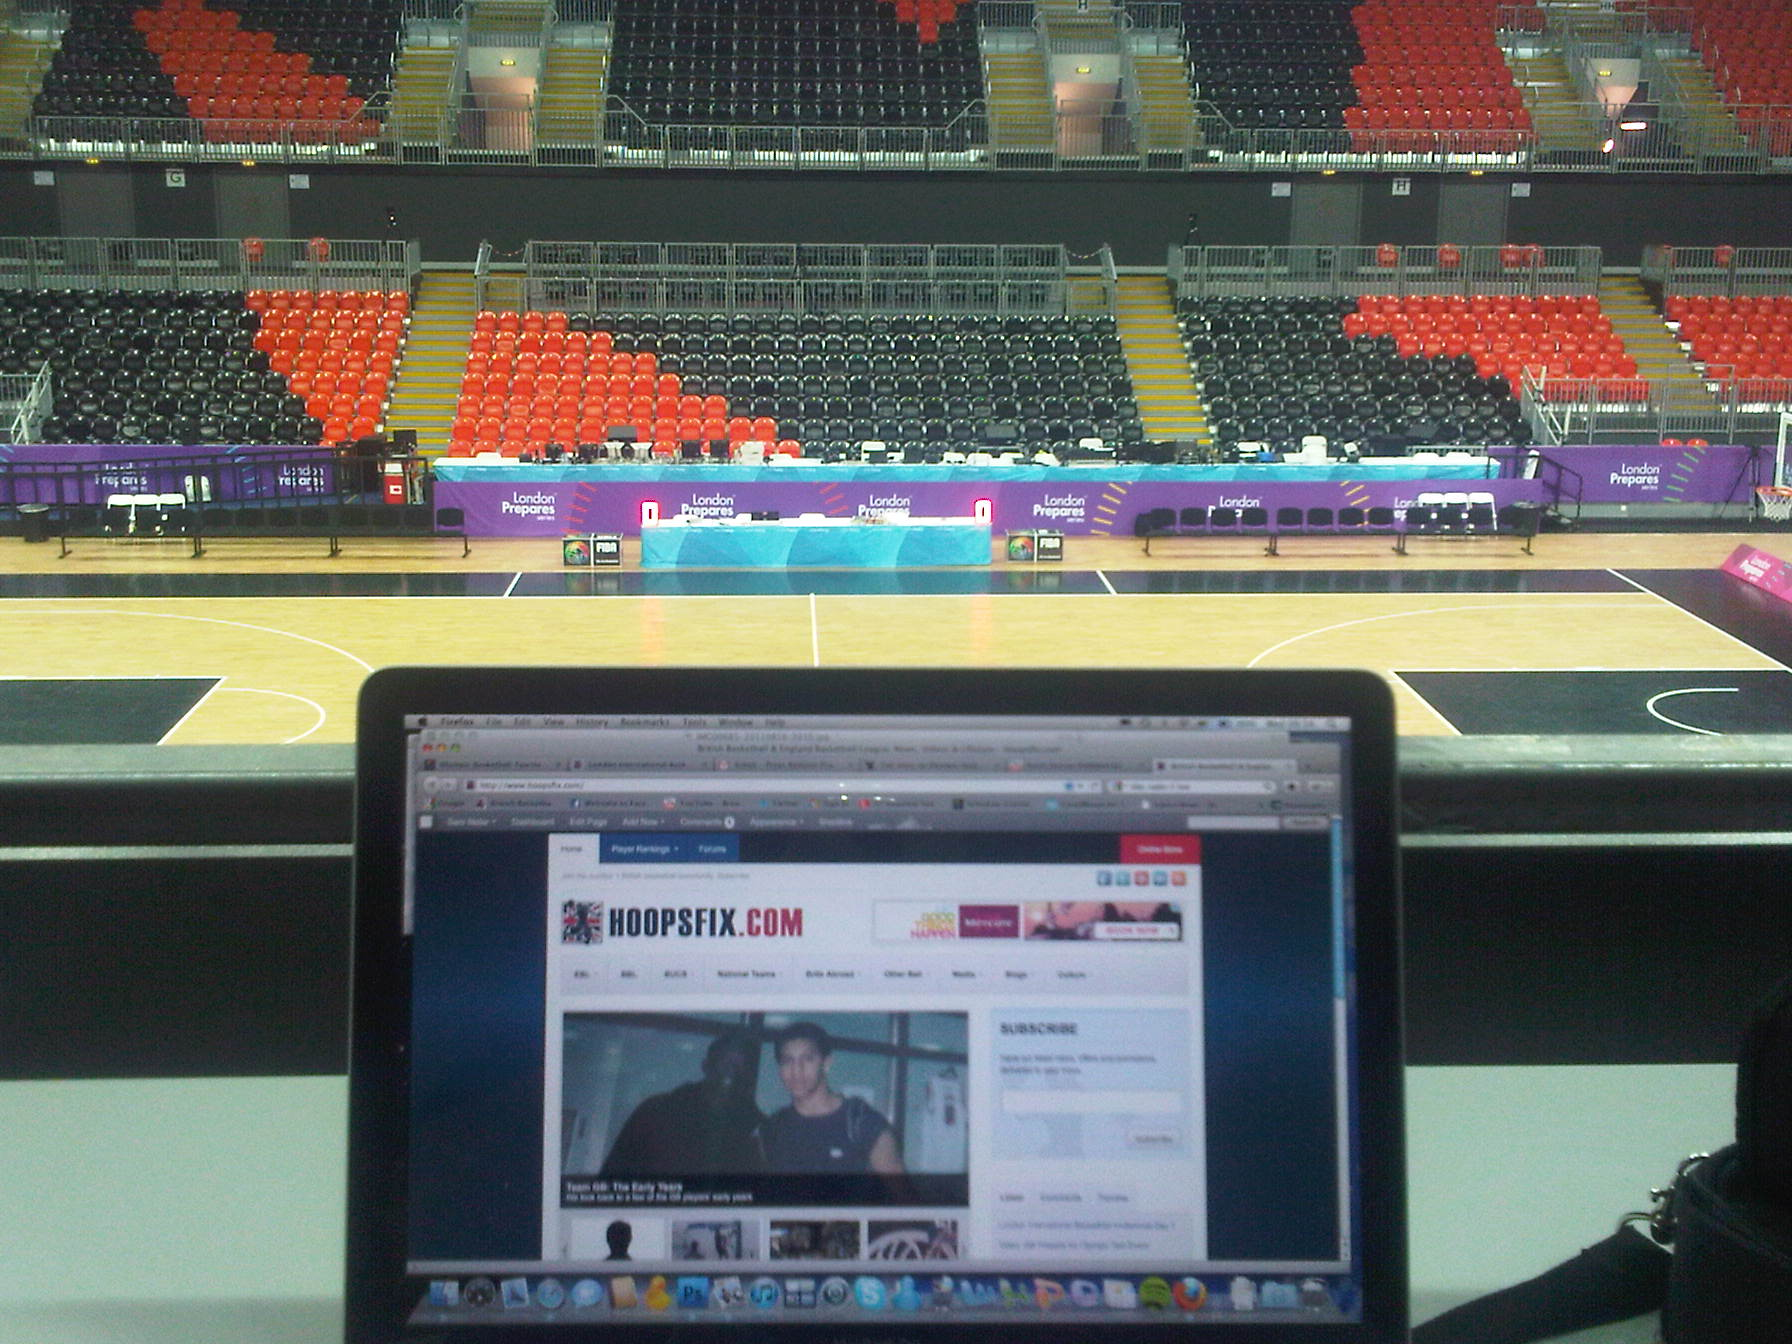 Hoopsfix at the Olympic Arena